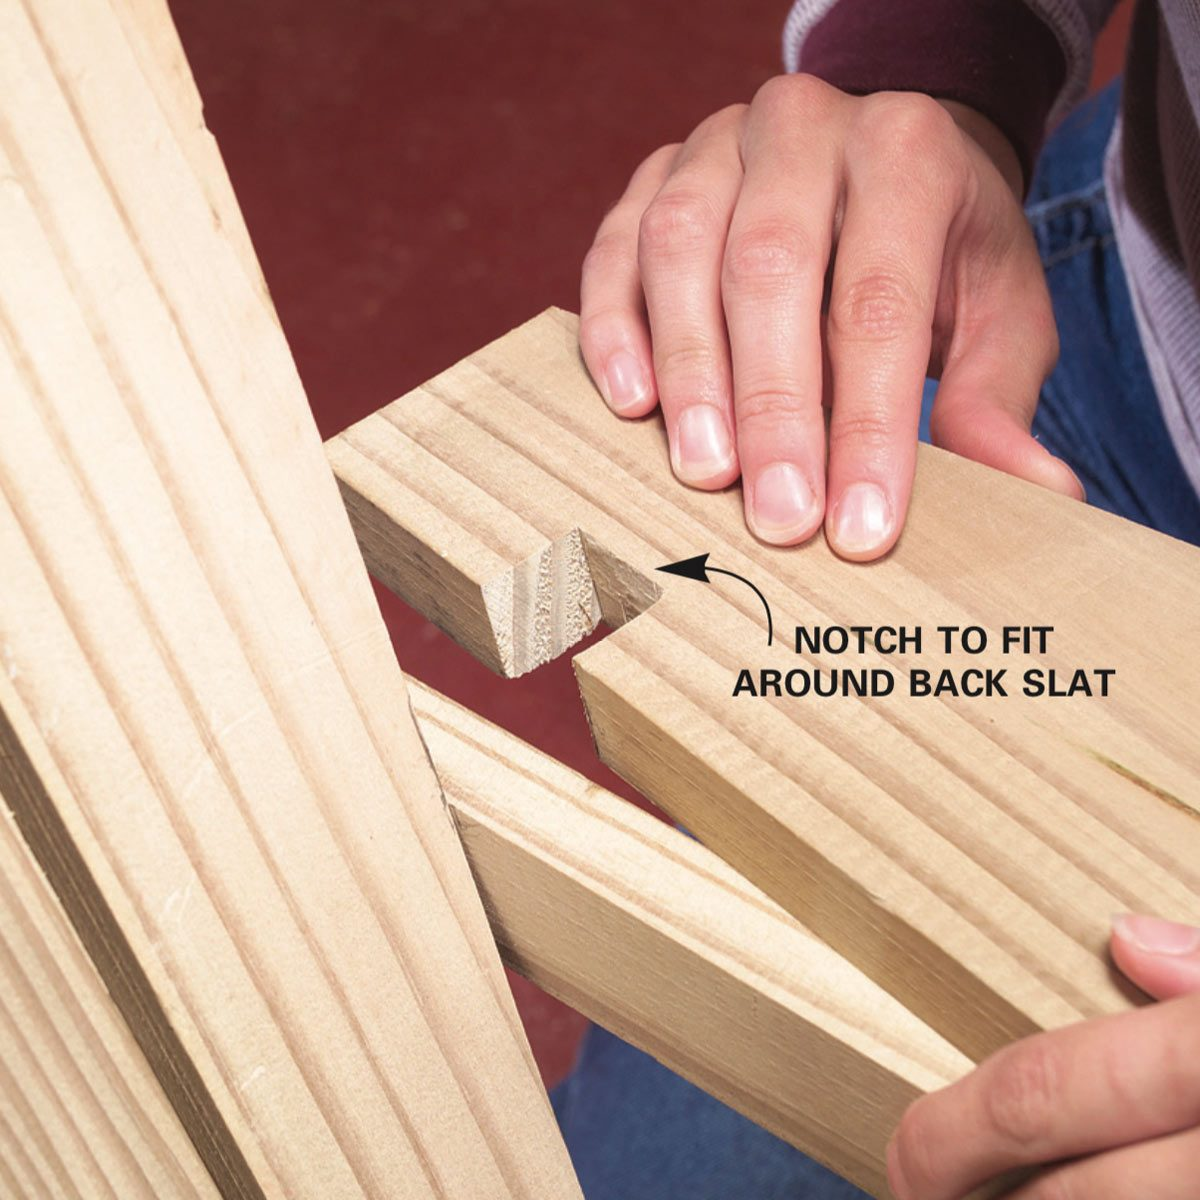 The Family Handyman: How To Make An Adirondack Chair And Love Seat